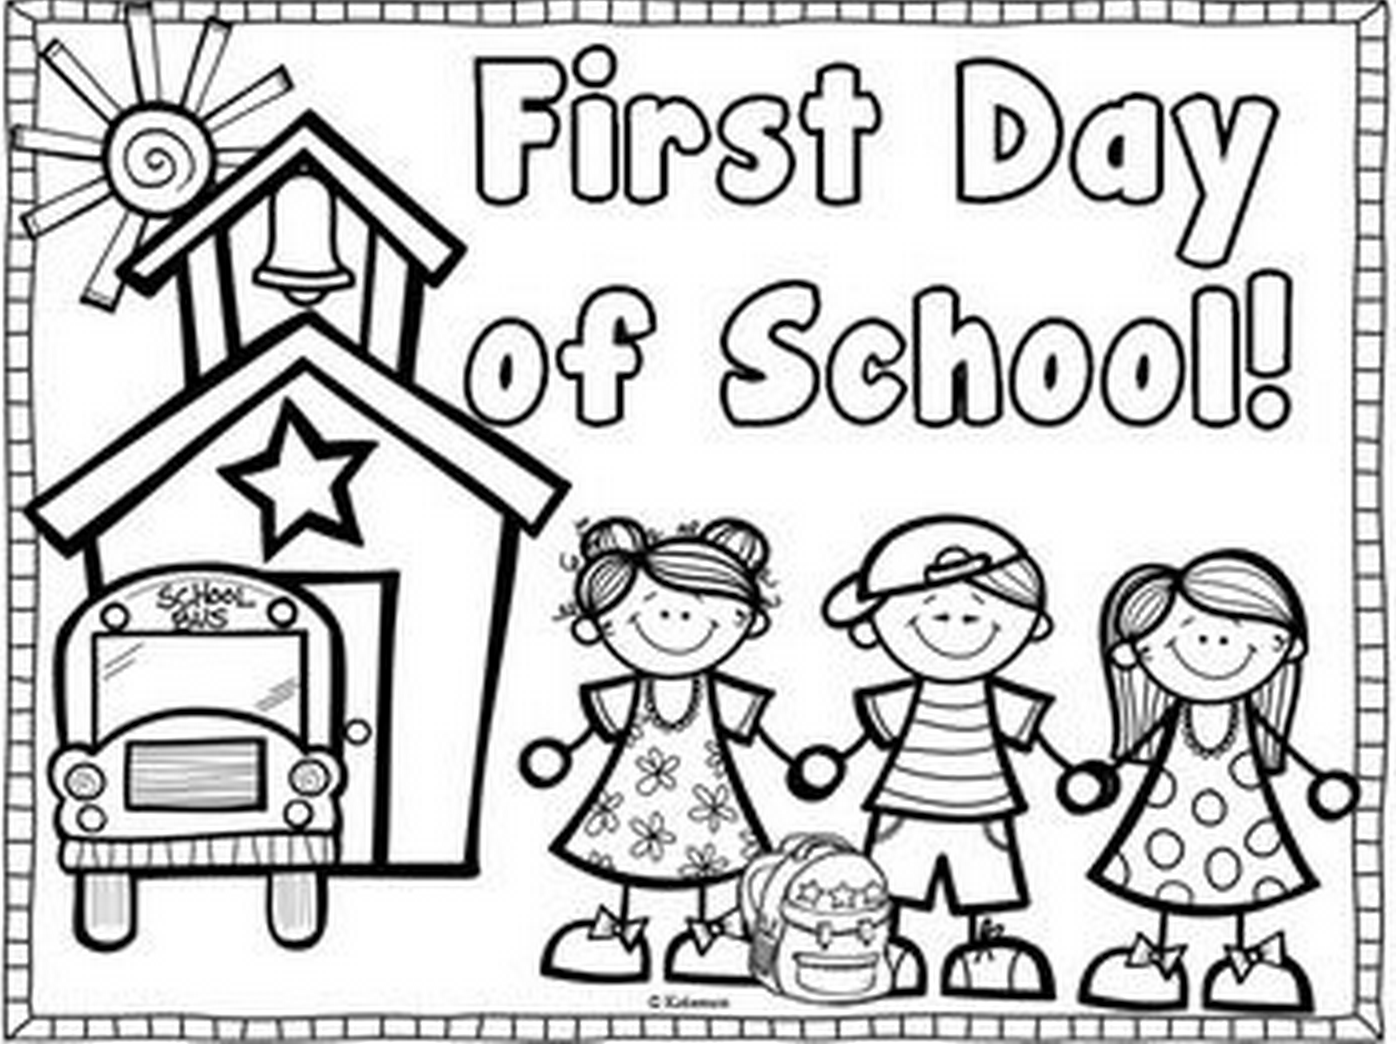 First Day of School coloring page & book for kids.